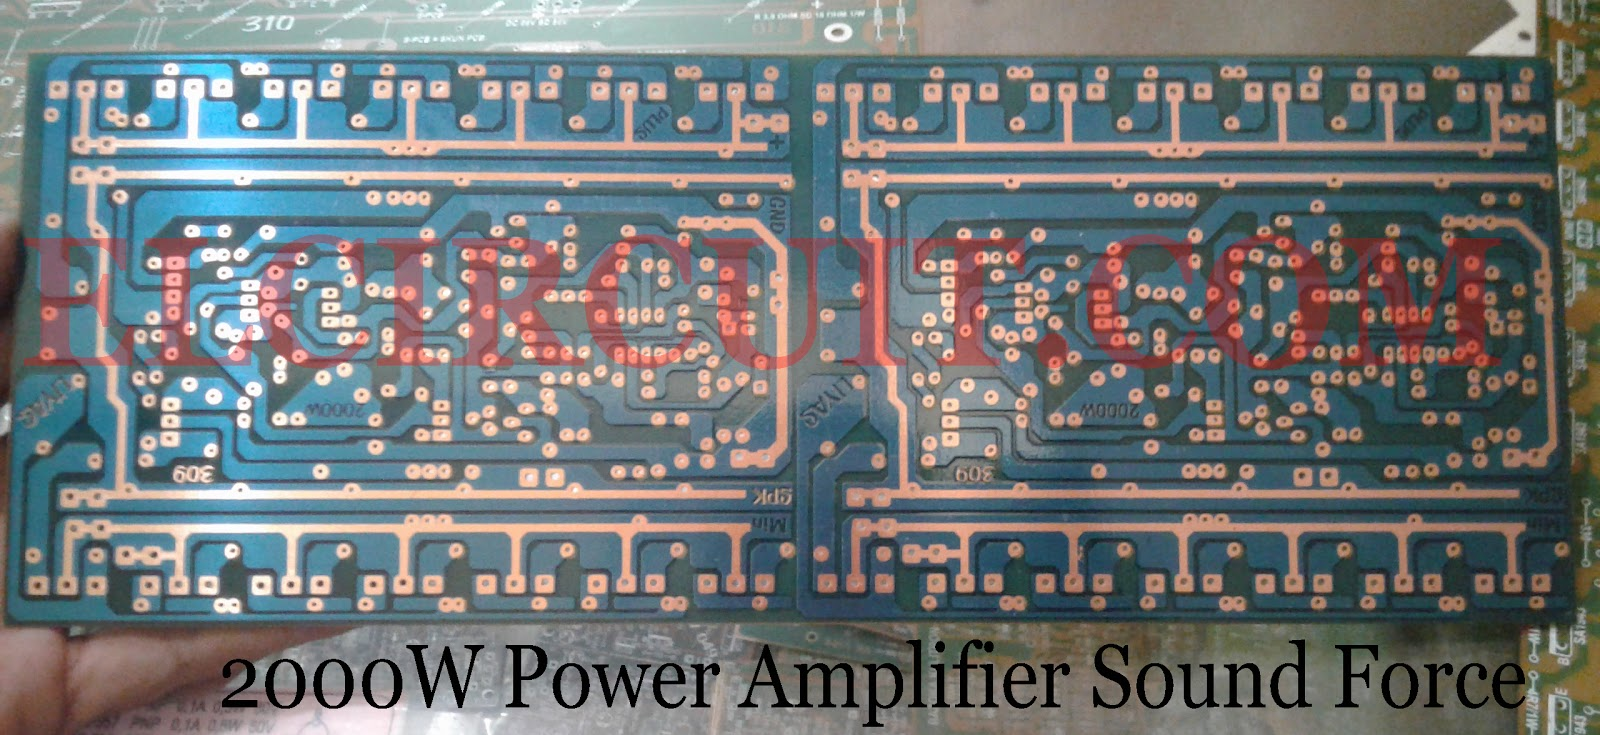 2000w power amplifier circuit complete pcb layout electronic circuit rh elcircuit com  2000w mosfet audio amplifier circuit diagram